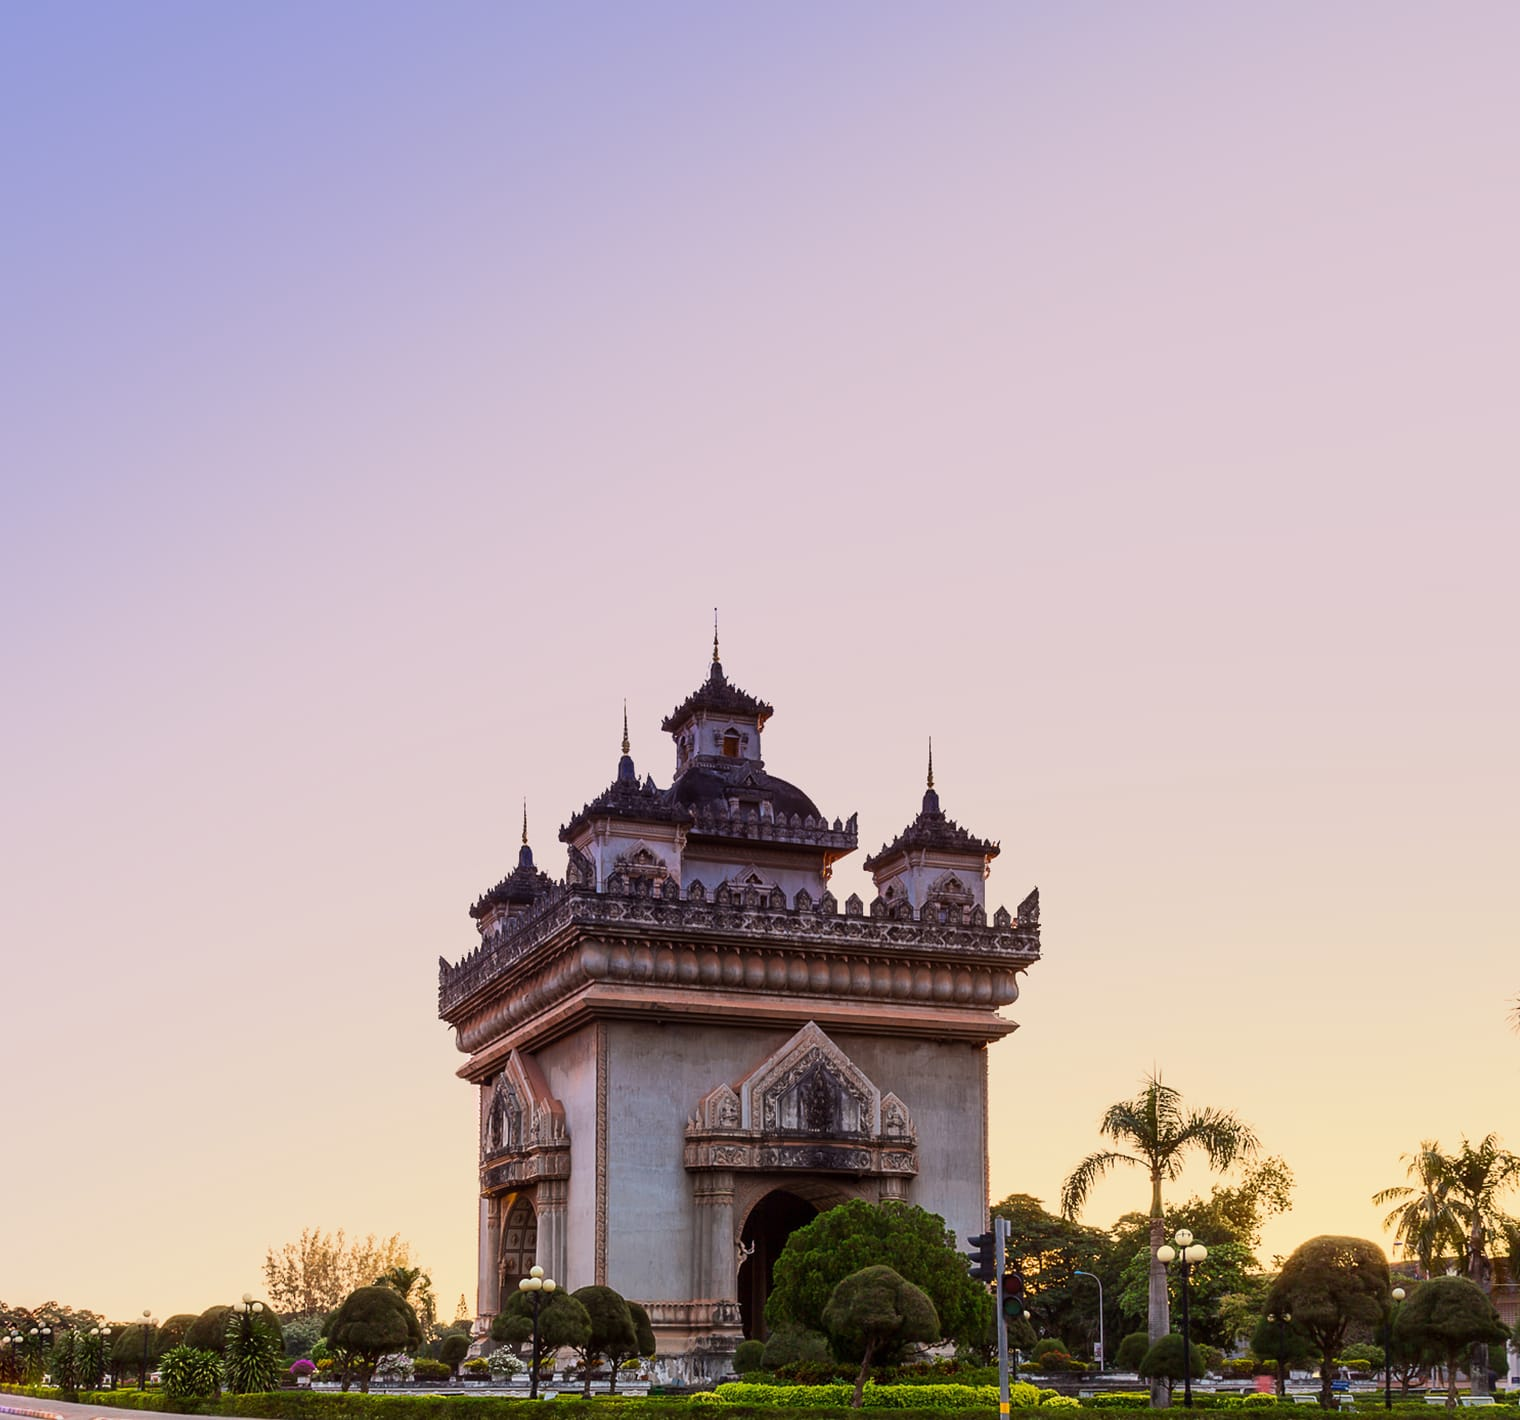 Market research and validation services in Laos